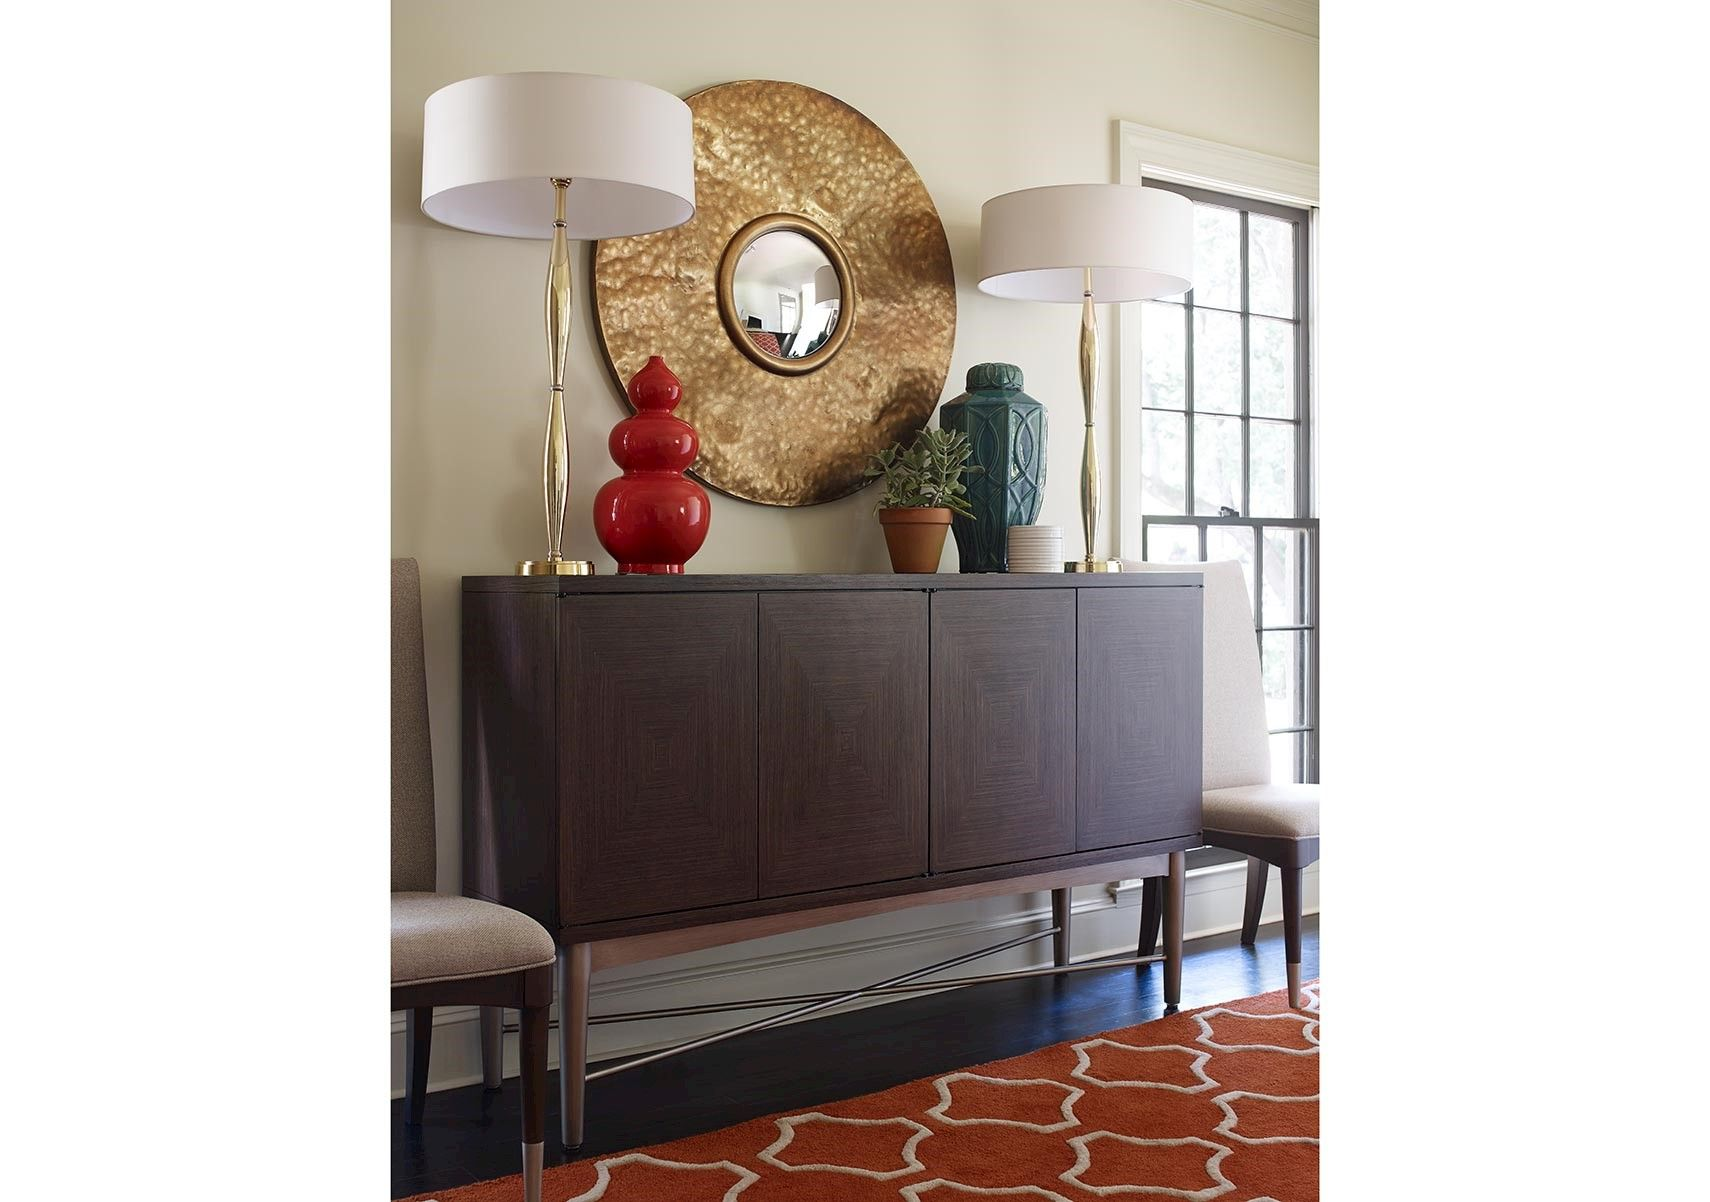 Lacks Soho Credenza By Rachael Ray Clean Lines